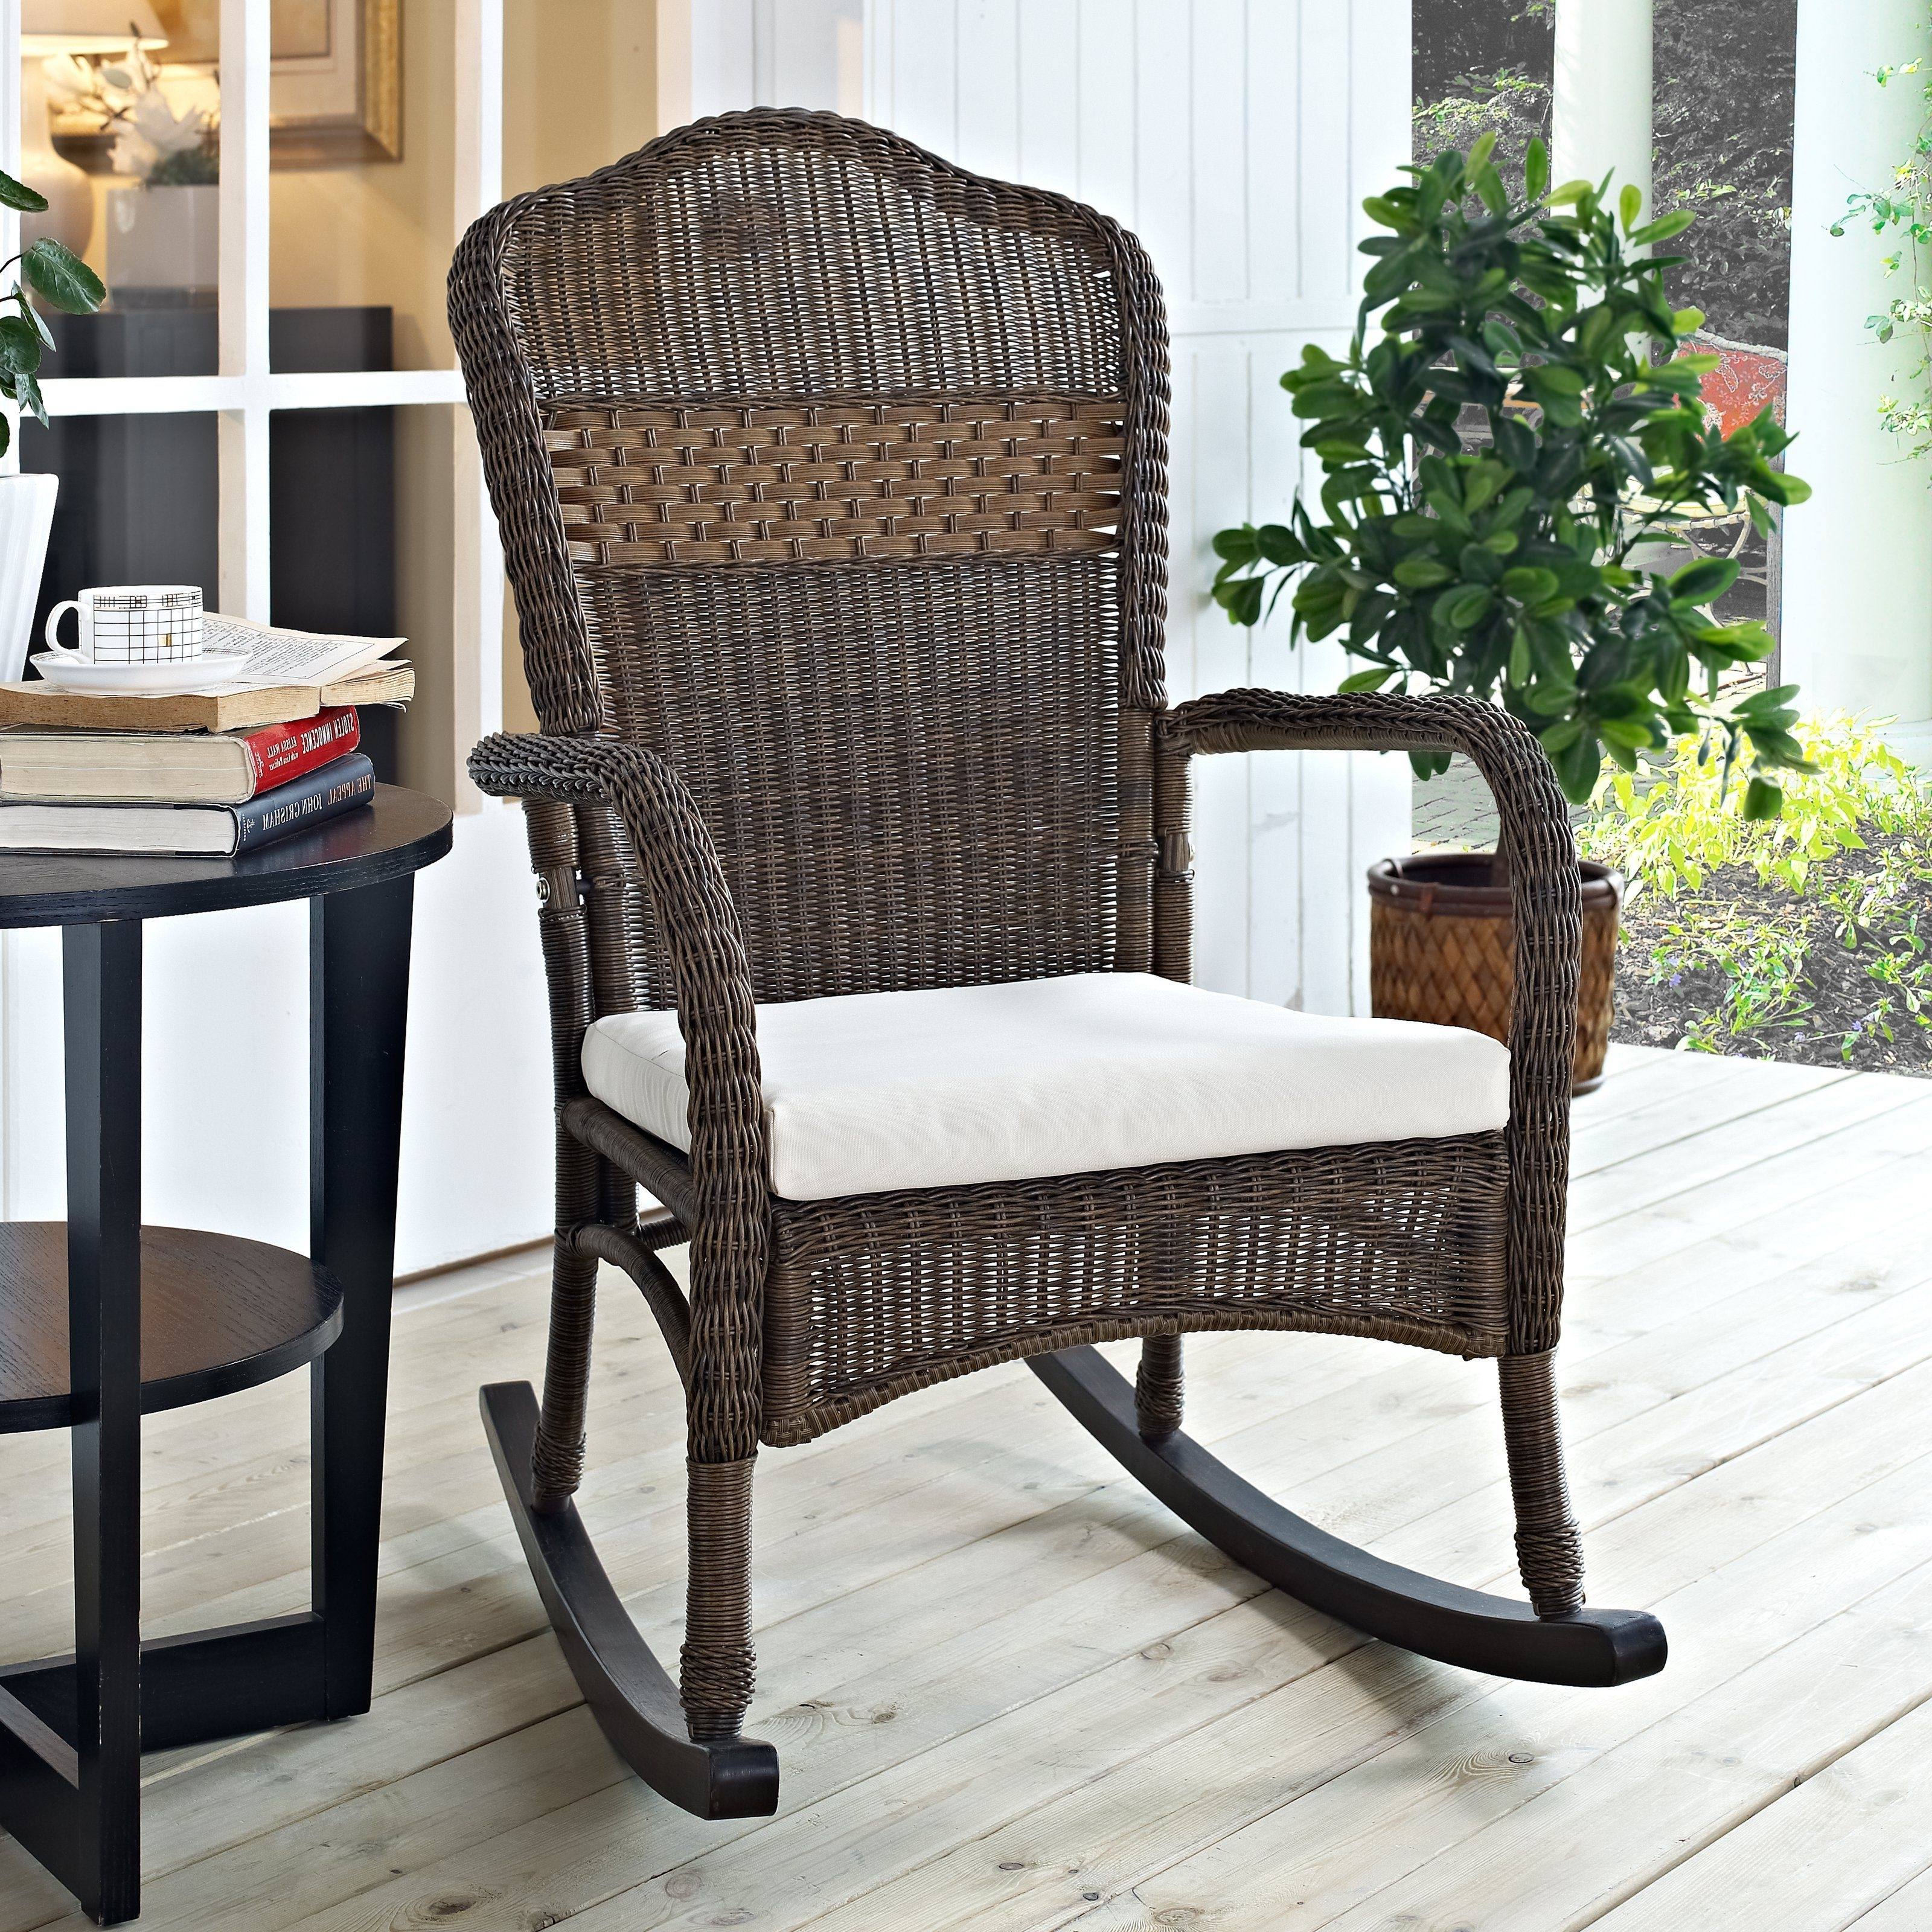 Well Liked Outdoor Coral Coast Mocha Resin Wicker Rocking Chair With Beige With Regard To Rattan Outdoor Rocking Chairs (View 15 of 15)